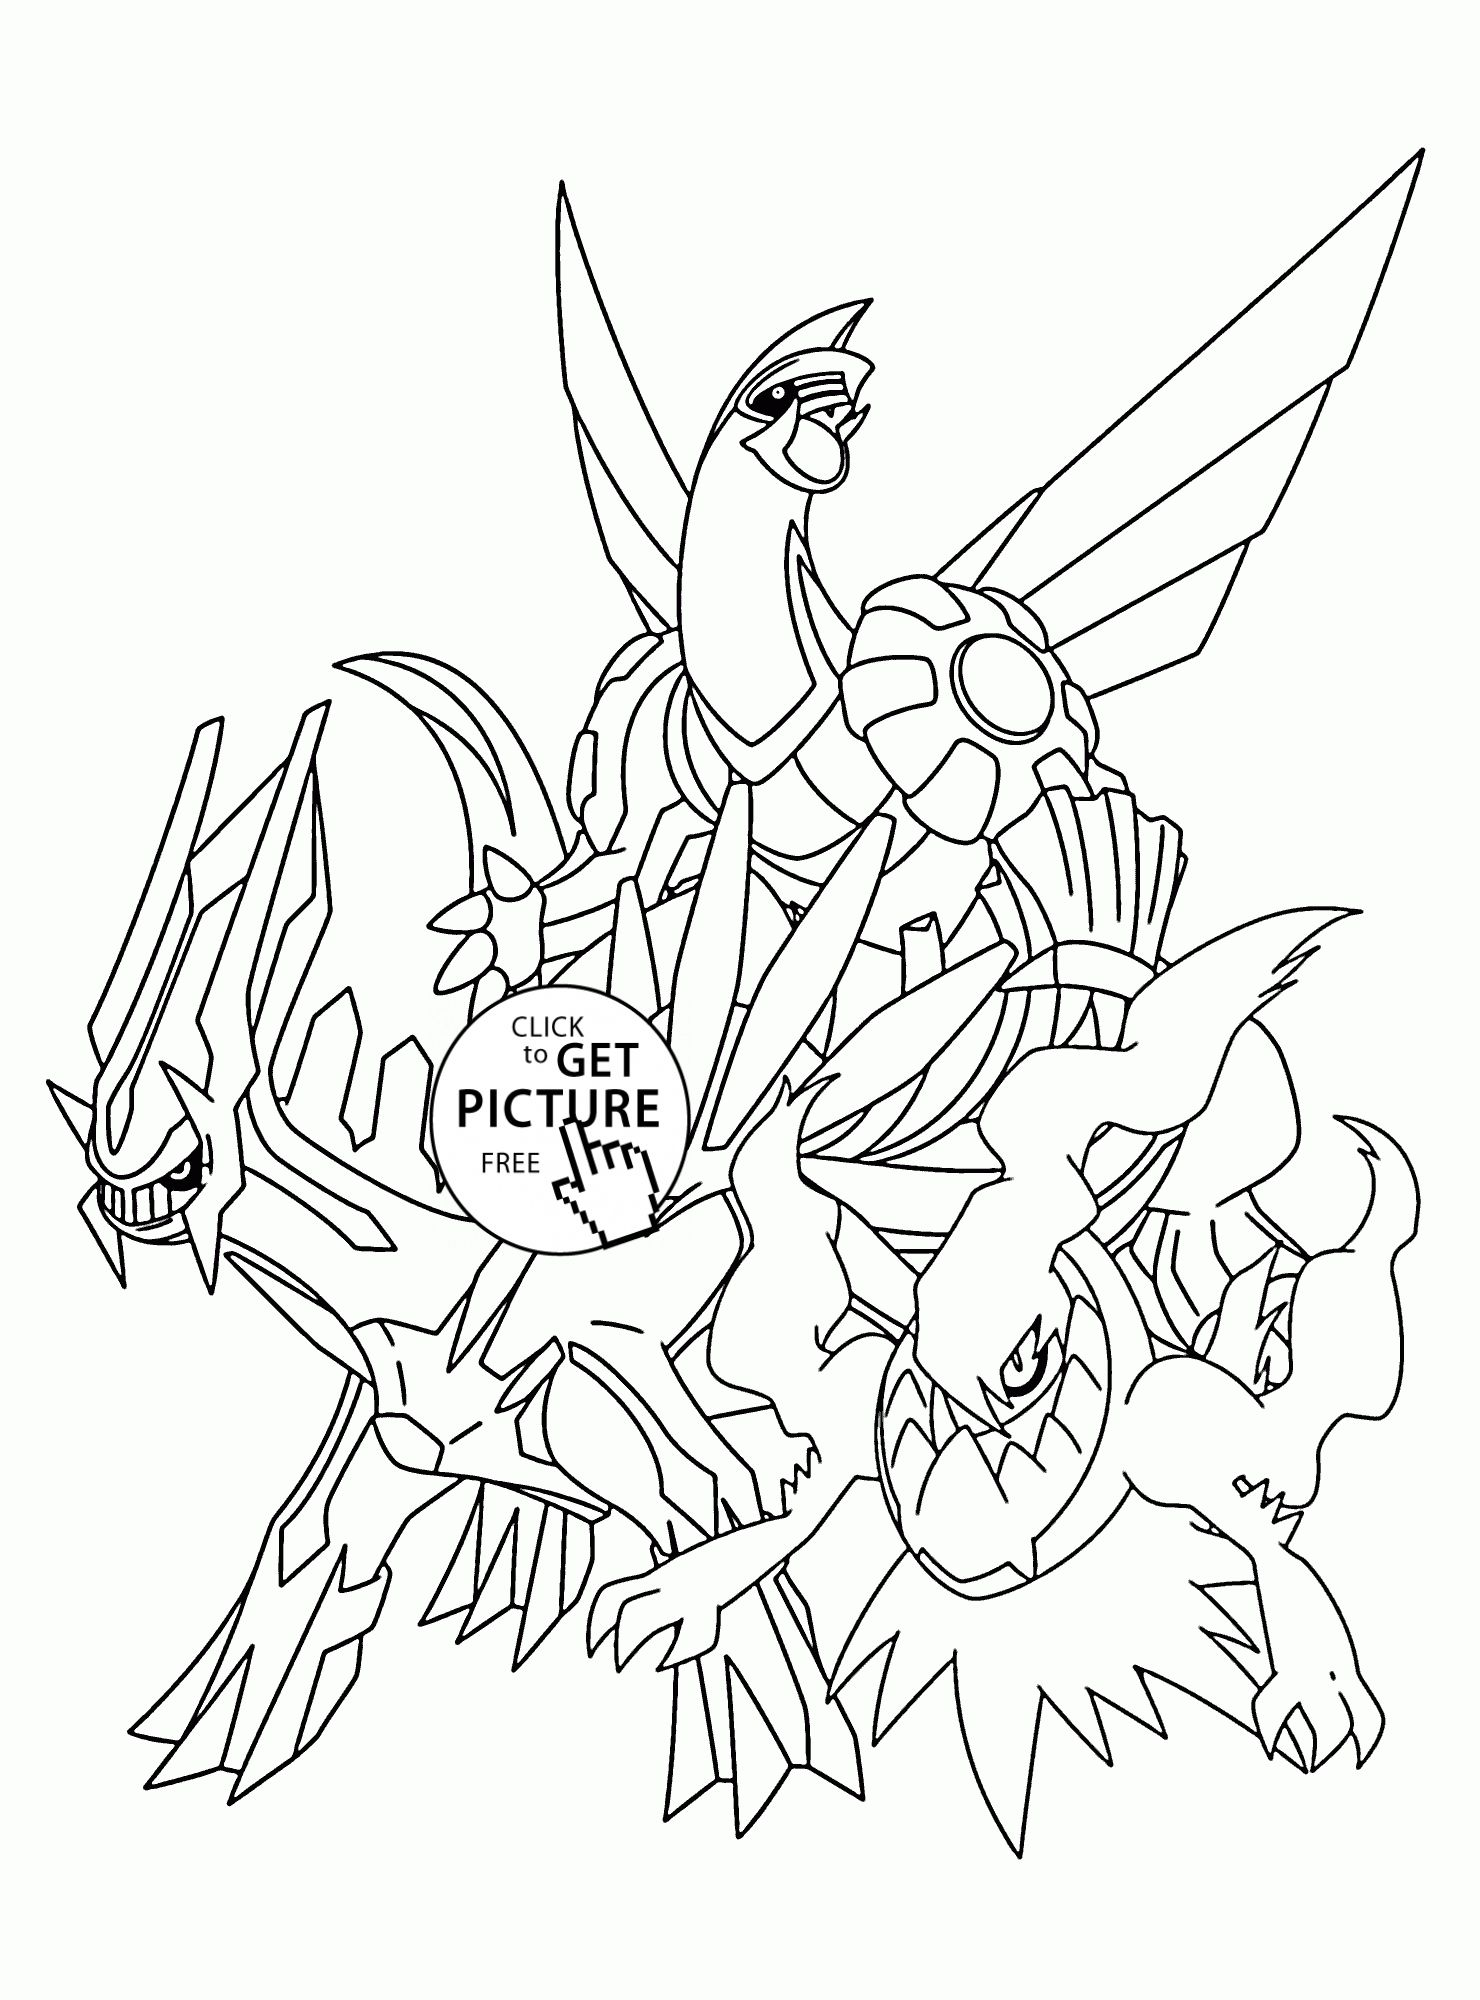 27 Inspiration Image Of Free Printable Pokemon Coloring Pages Entitlementtrap Com Pokemon Coloring Pages Pokemon Coloring Sheets Pokemon Coloring